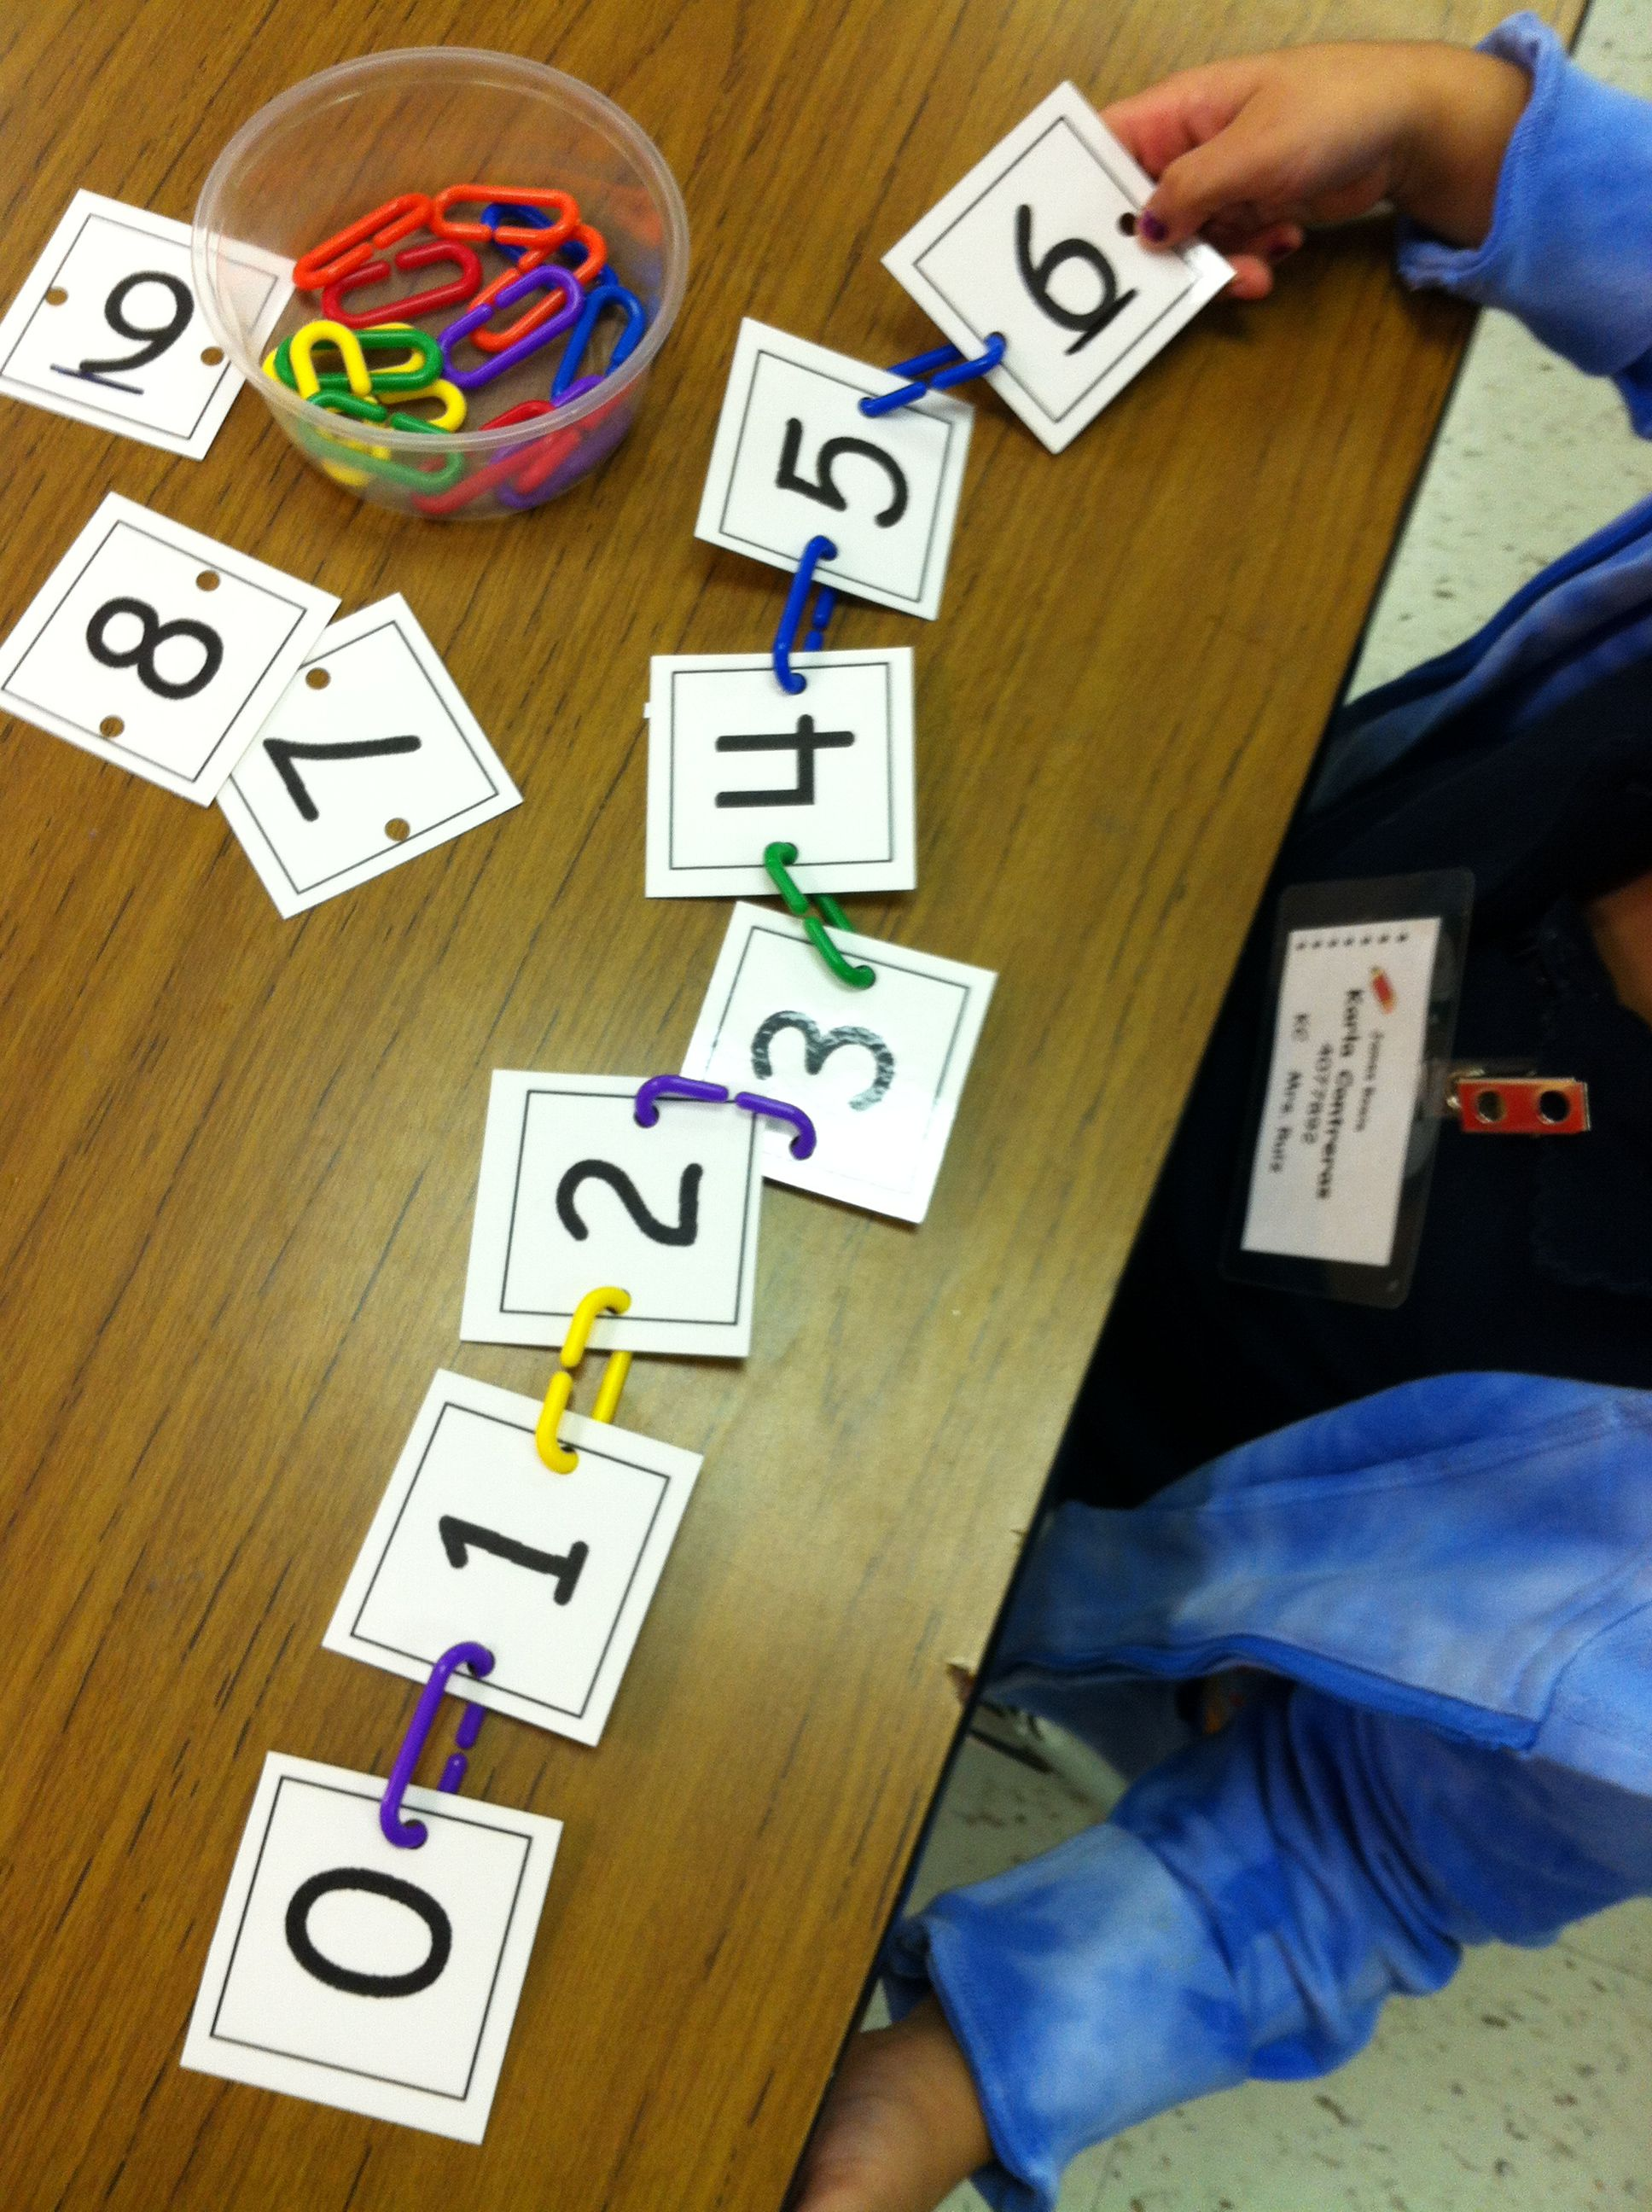 Number order game family math night pinterest math numbers number order by sandra i ruiz this could be an activity for younger siblings at a family math night ibookread ePUb